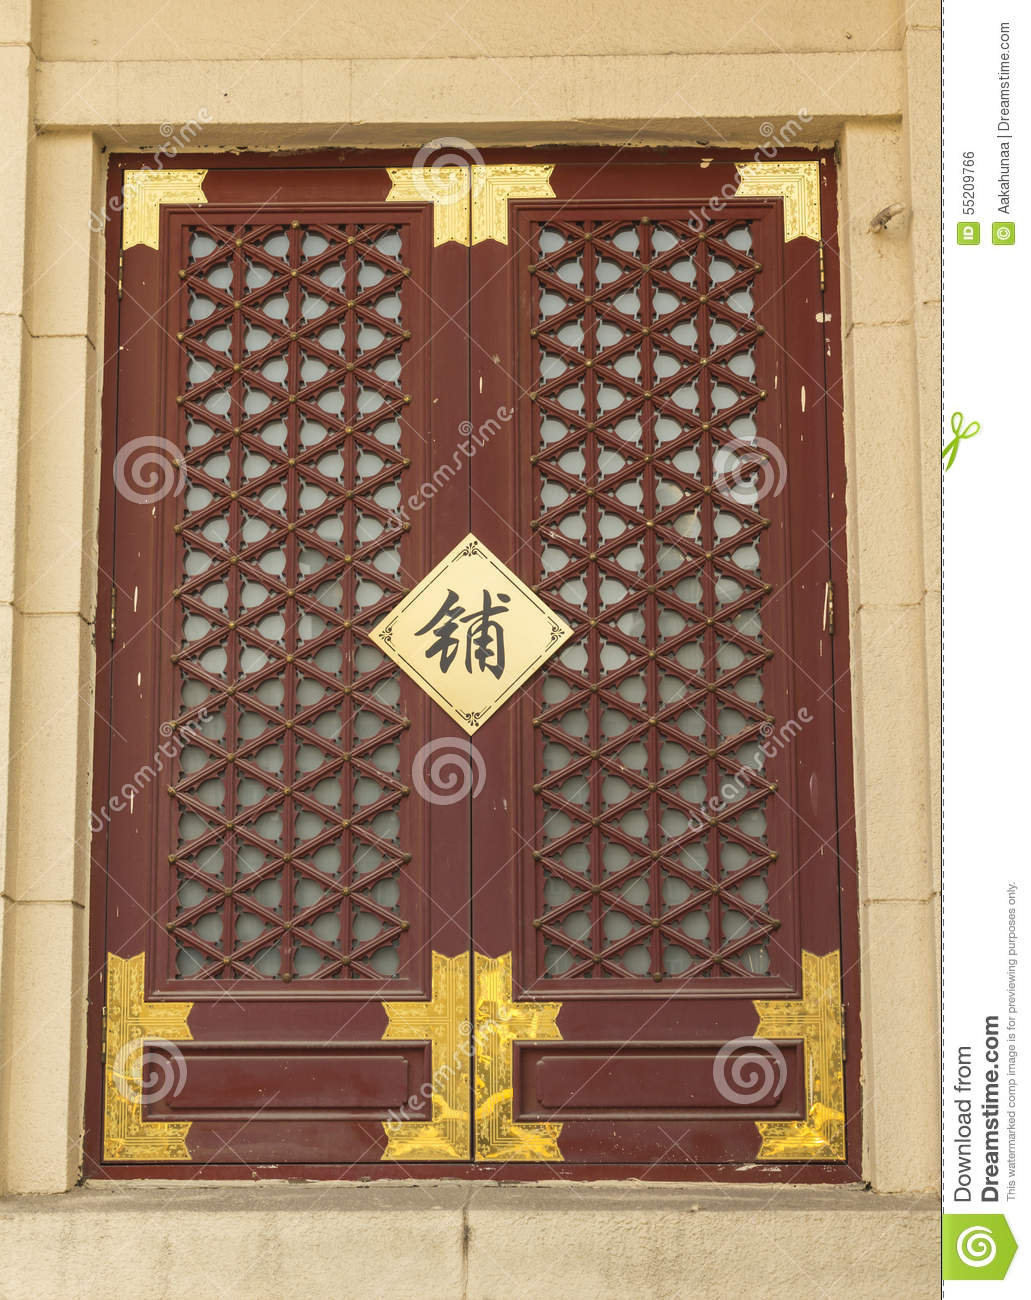 chinese architecture lattice windows stock photo image of